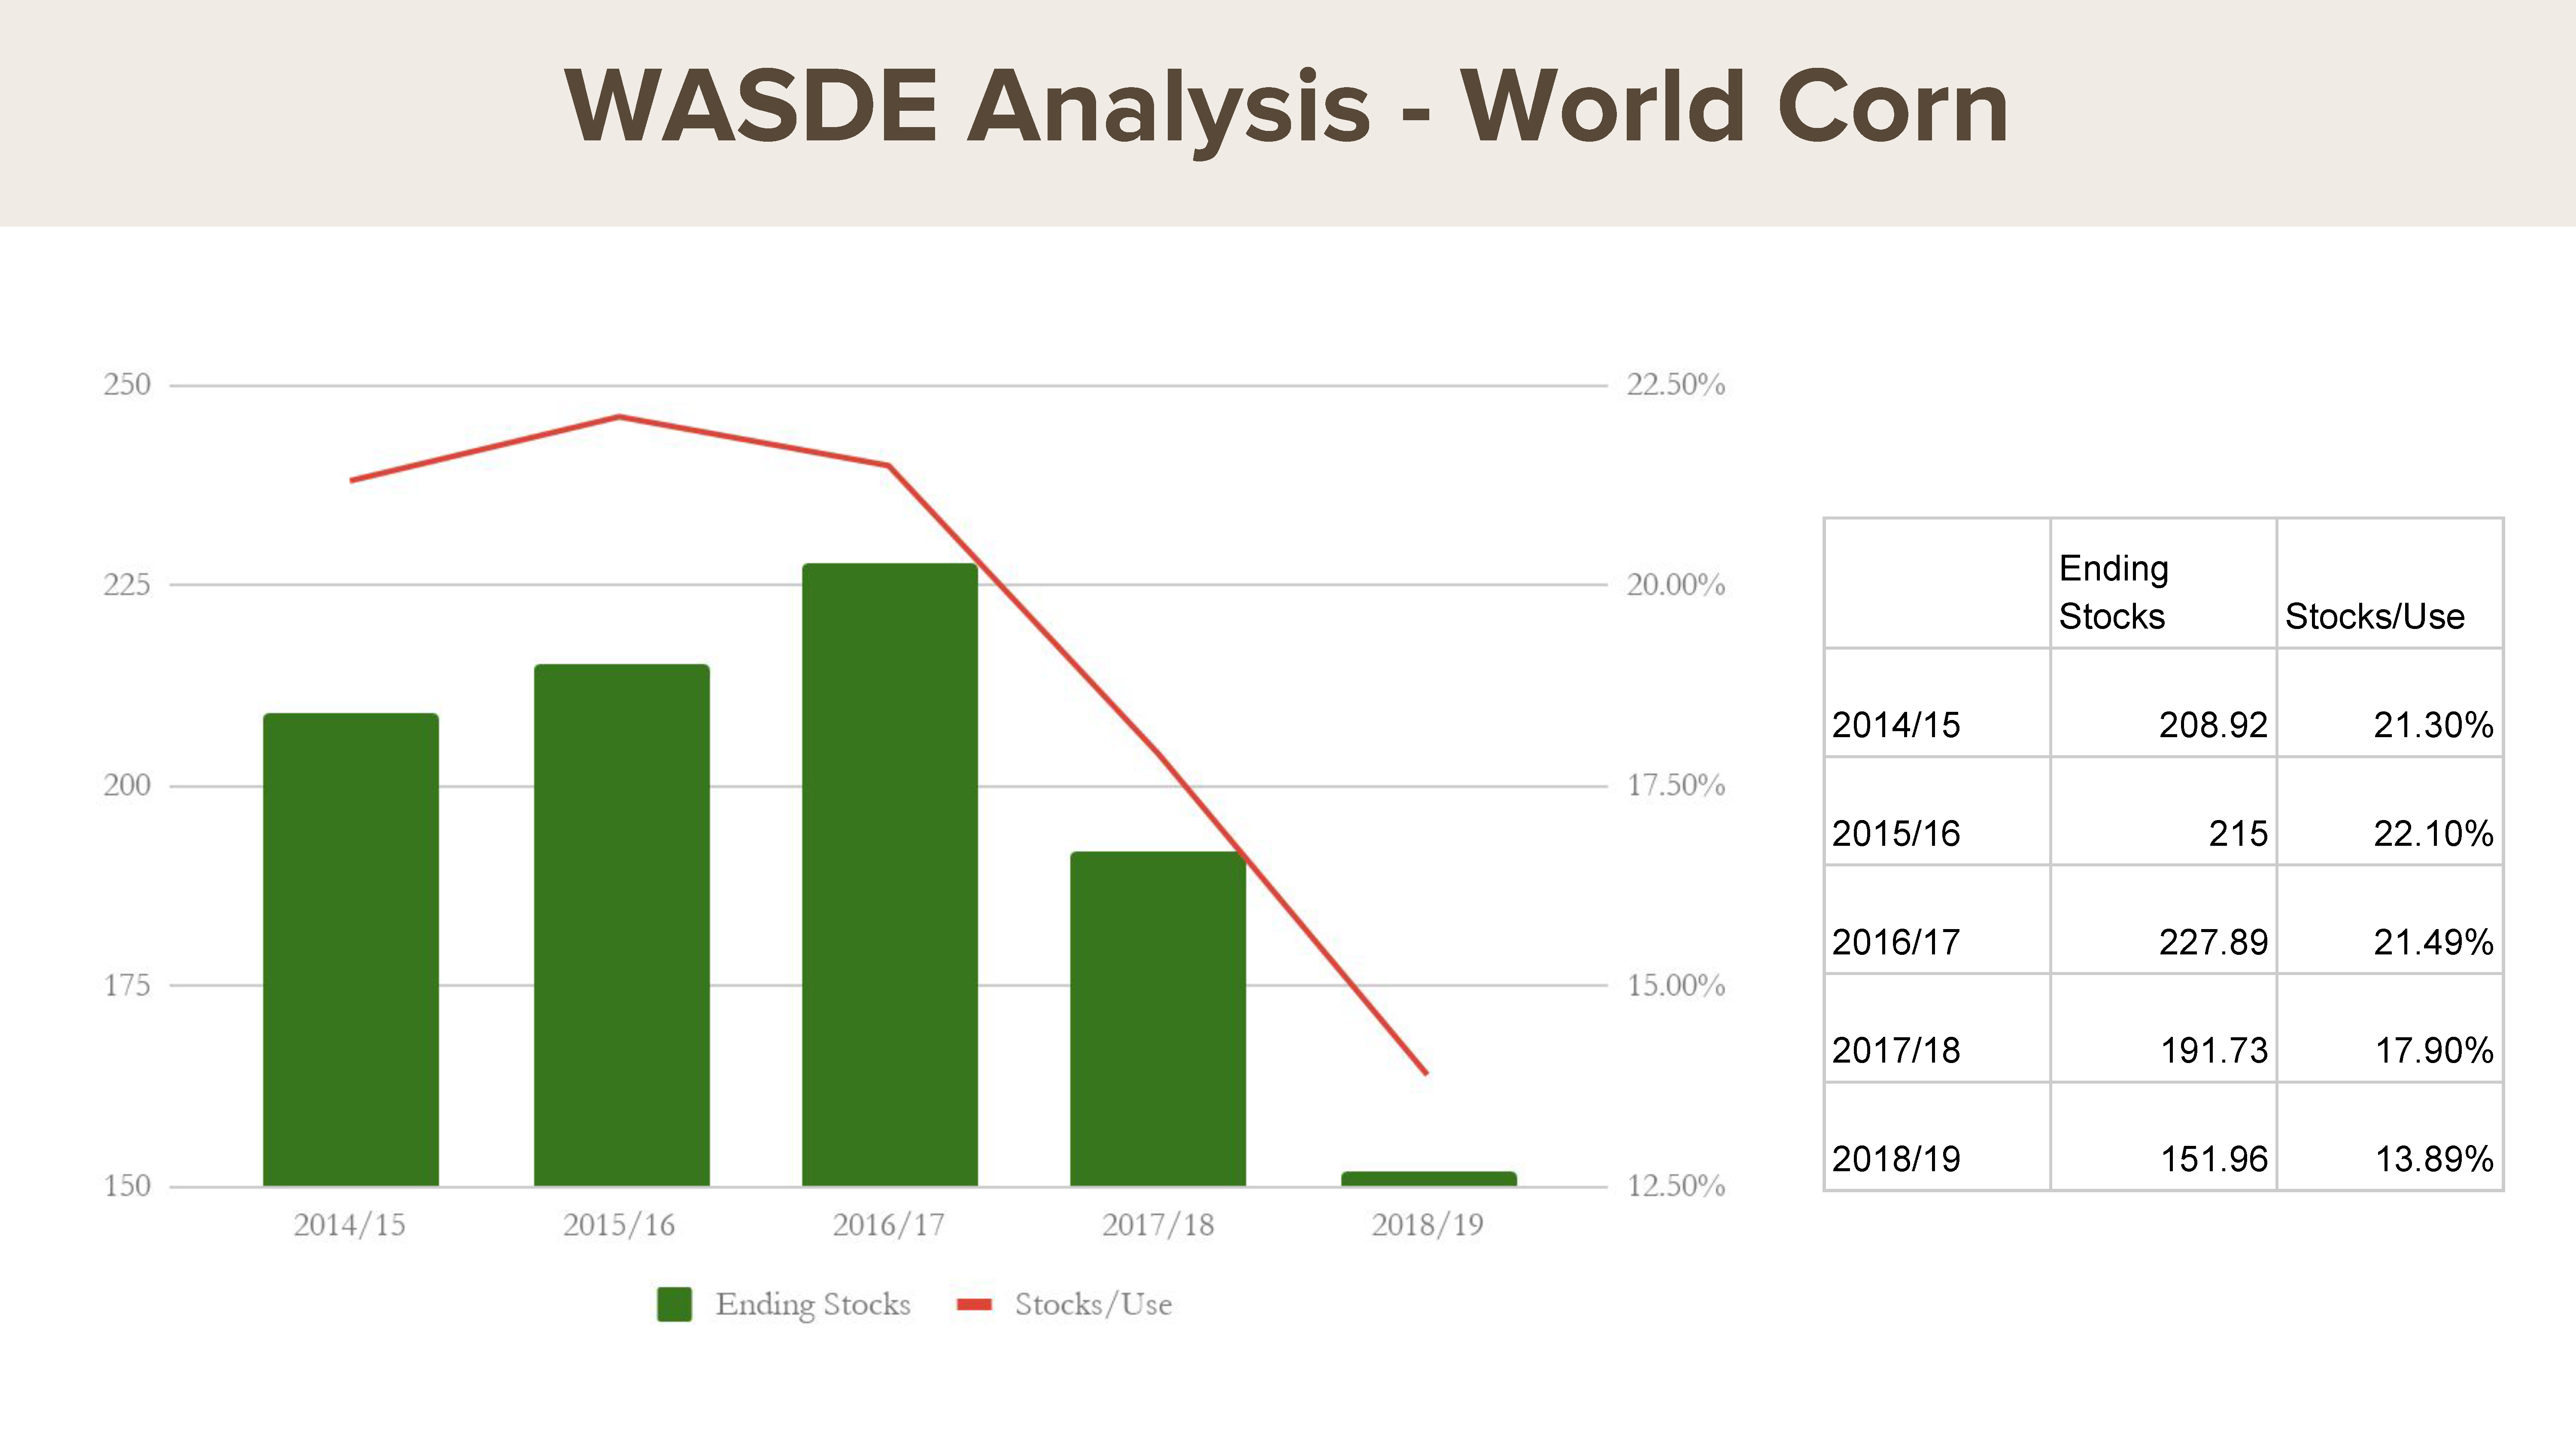 July WASDE: World corn stocks-to-use ratio